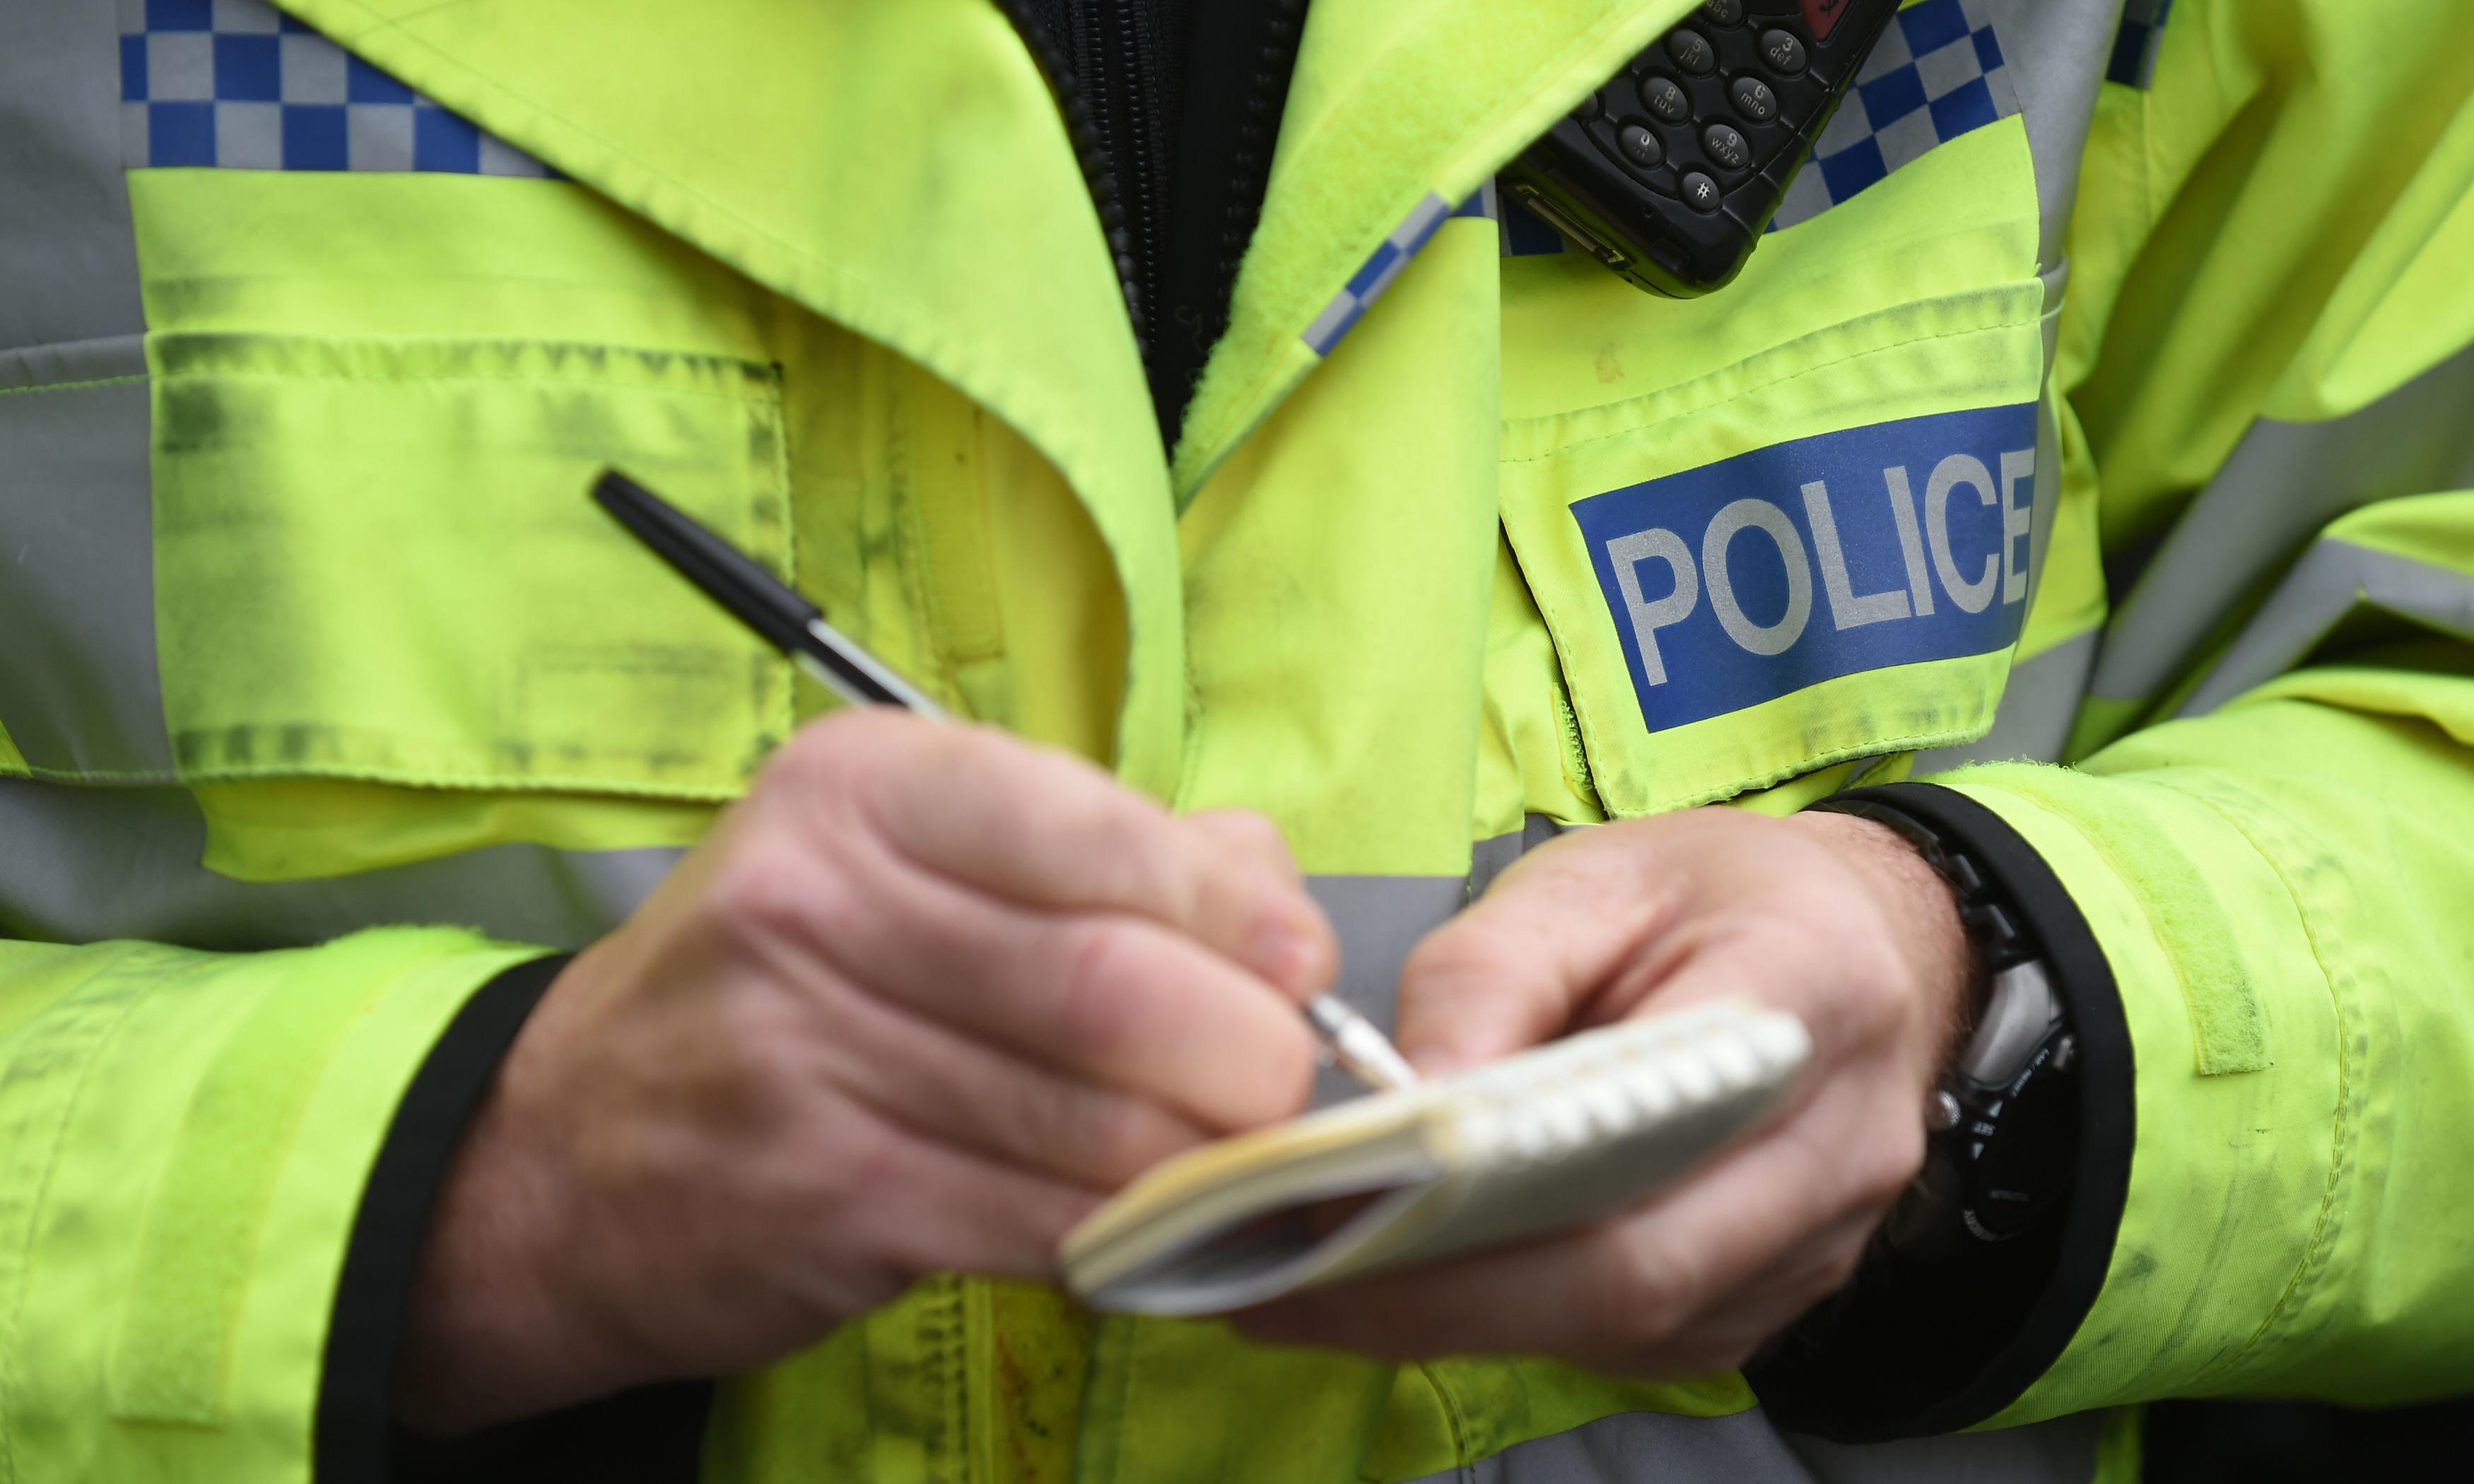 Manchester police have 'massive backlog' of uncharged suspects due to IT issue